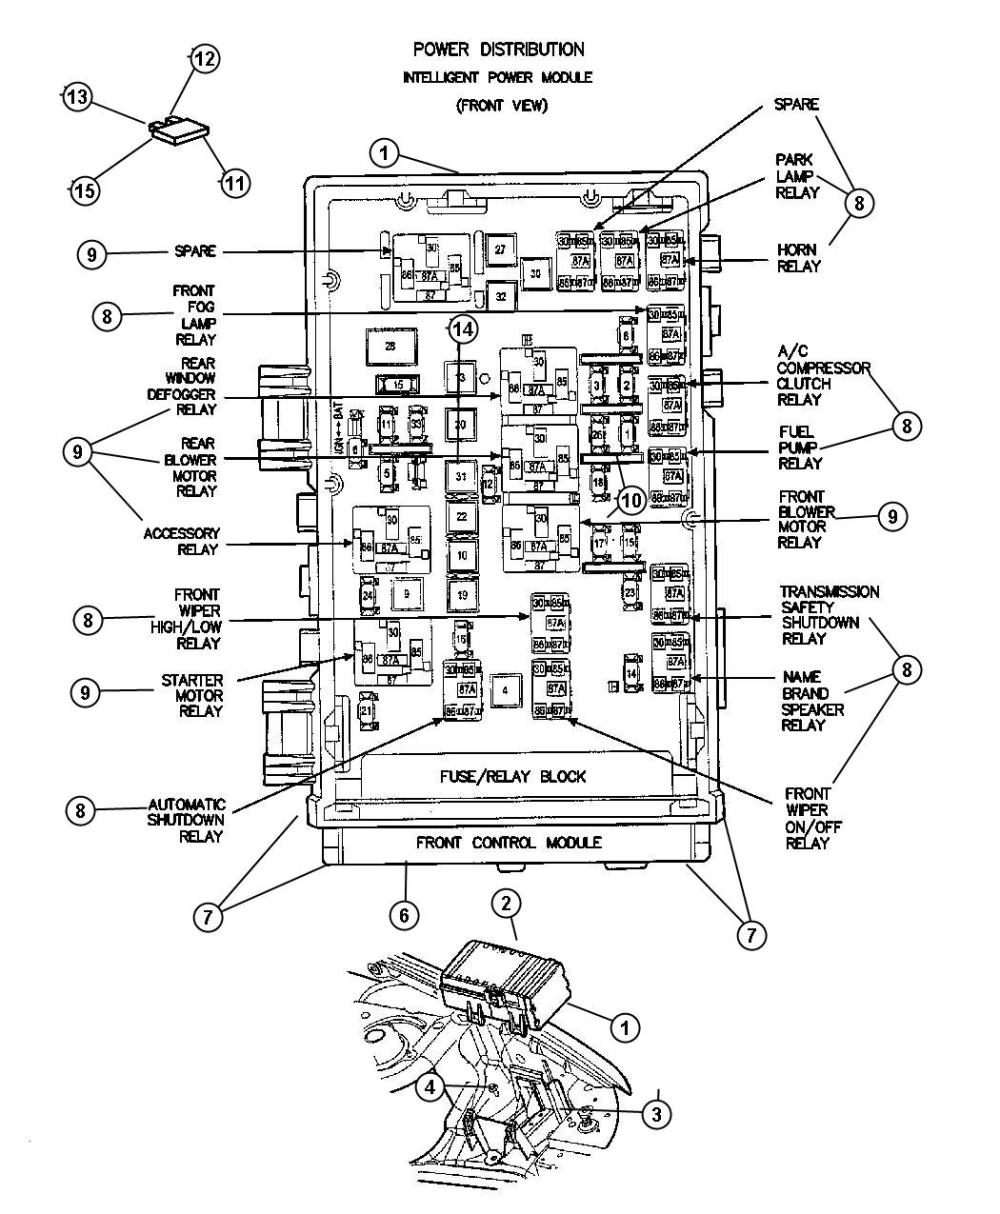 medium resolution of 2001 chrysler voyager fuse box diagram 2001 get free 2003 chrysler town and country fuse box